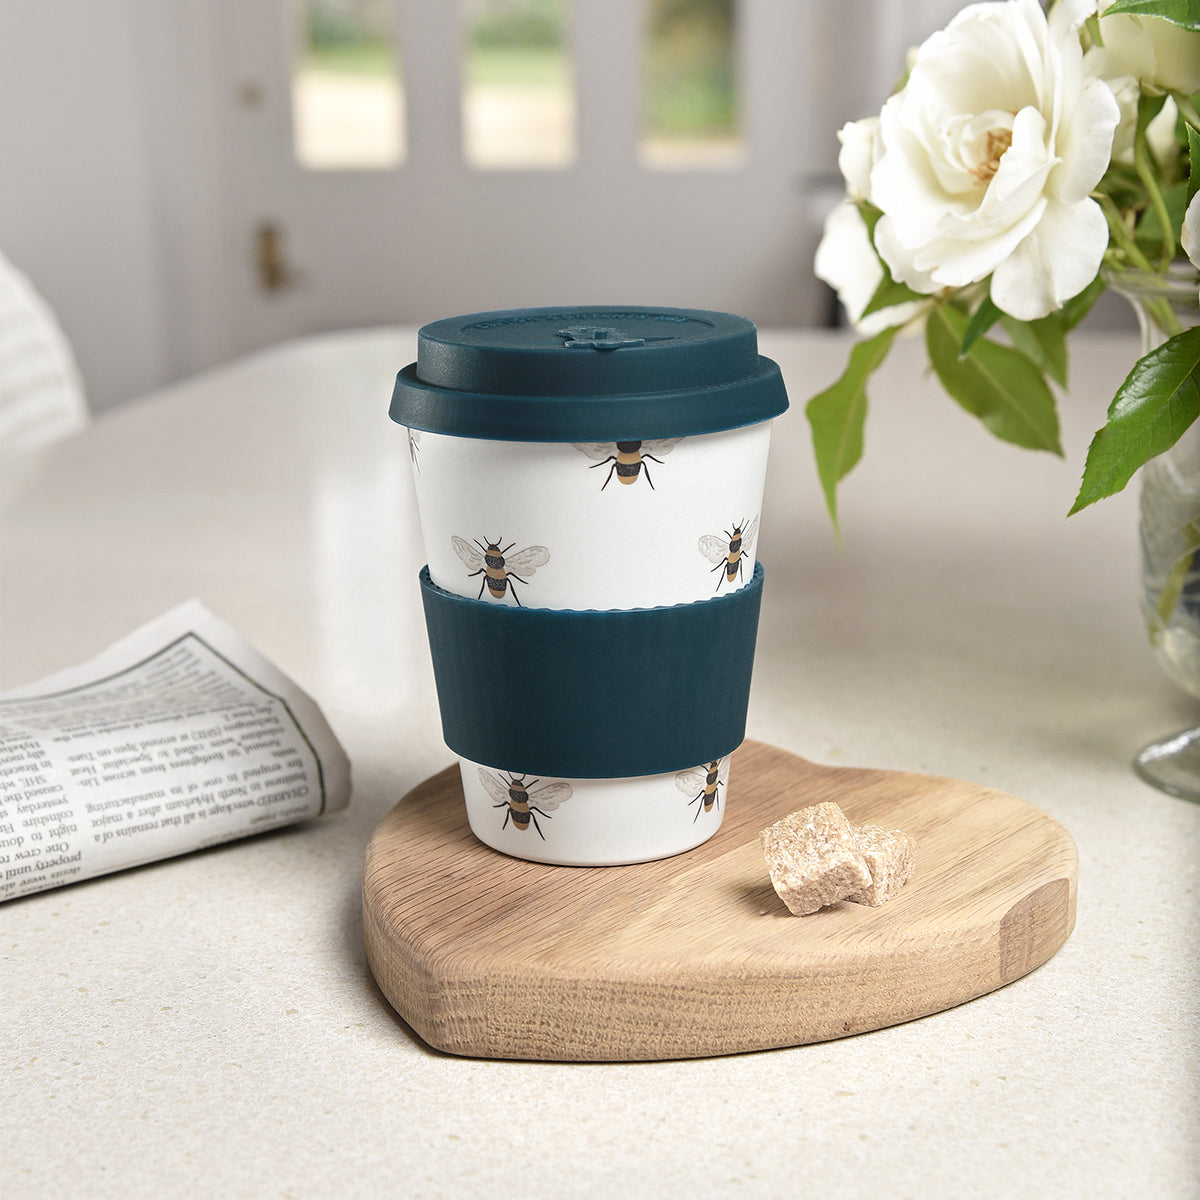 Bees Bamboo Travel Mug by Sophie Allport